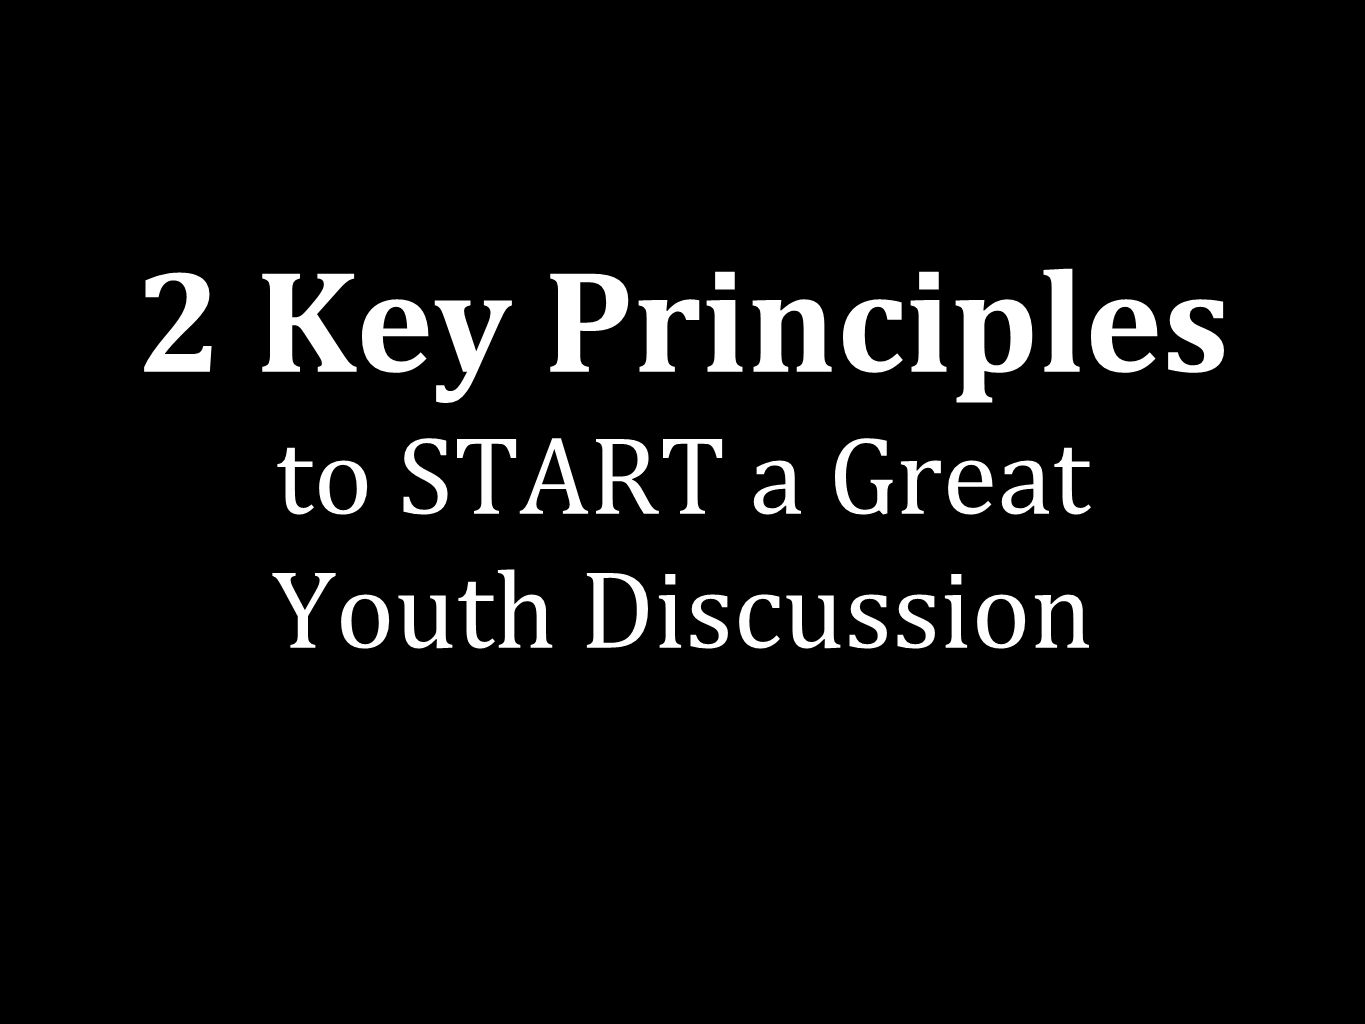 2 Key Principles to START a Great Youth Discussion